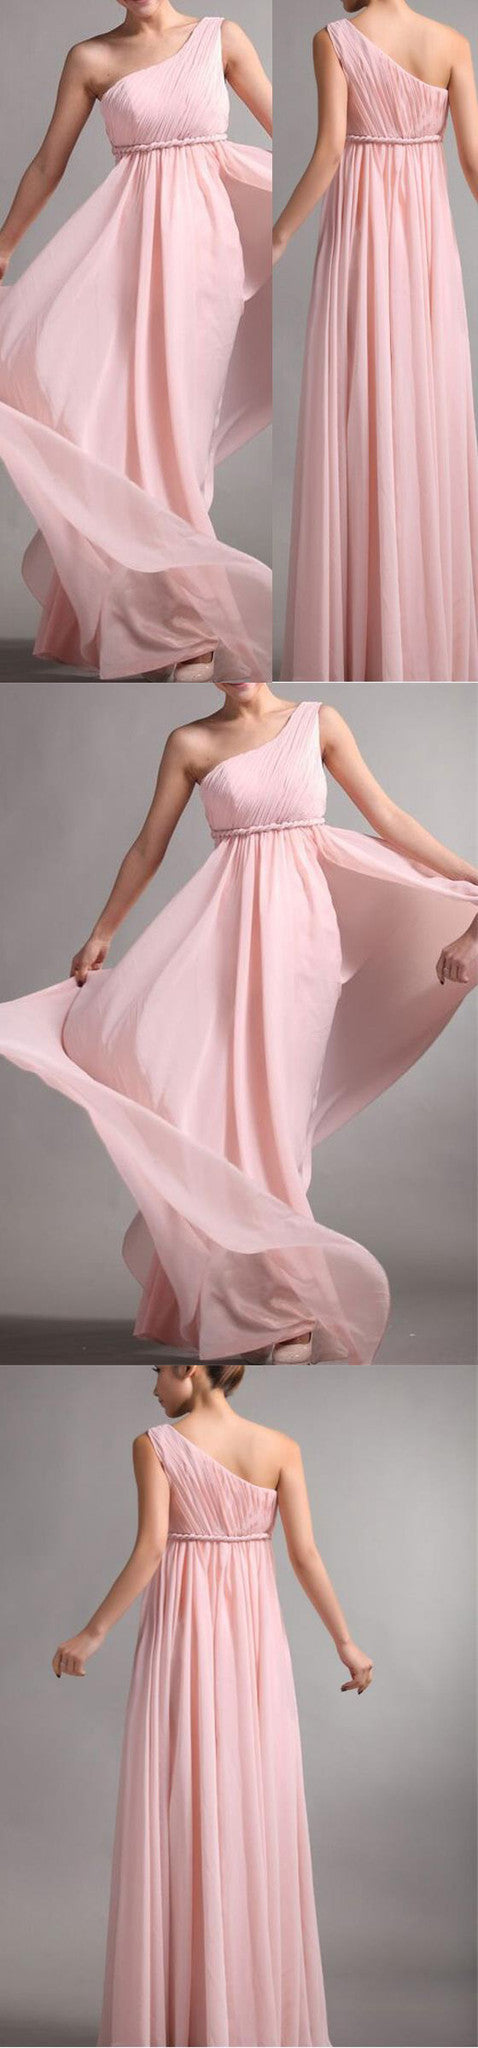 Simple Cheap Popular Junior Asymmetric Empire Waist Pink Chiffon Pleating Wedding Party Bridesmaid Dresses, WG49